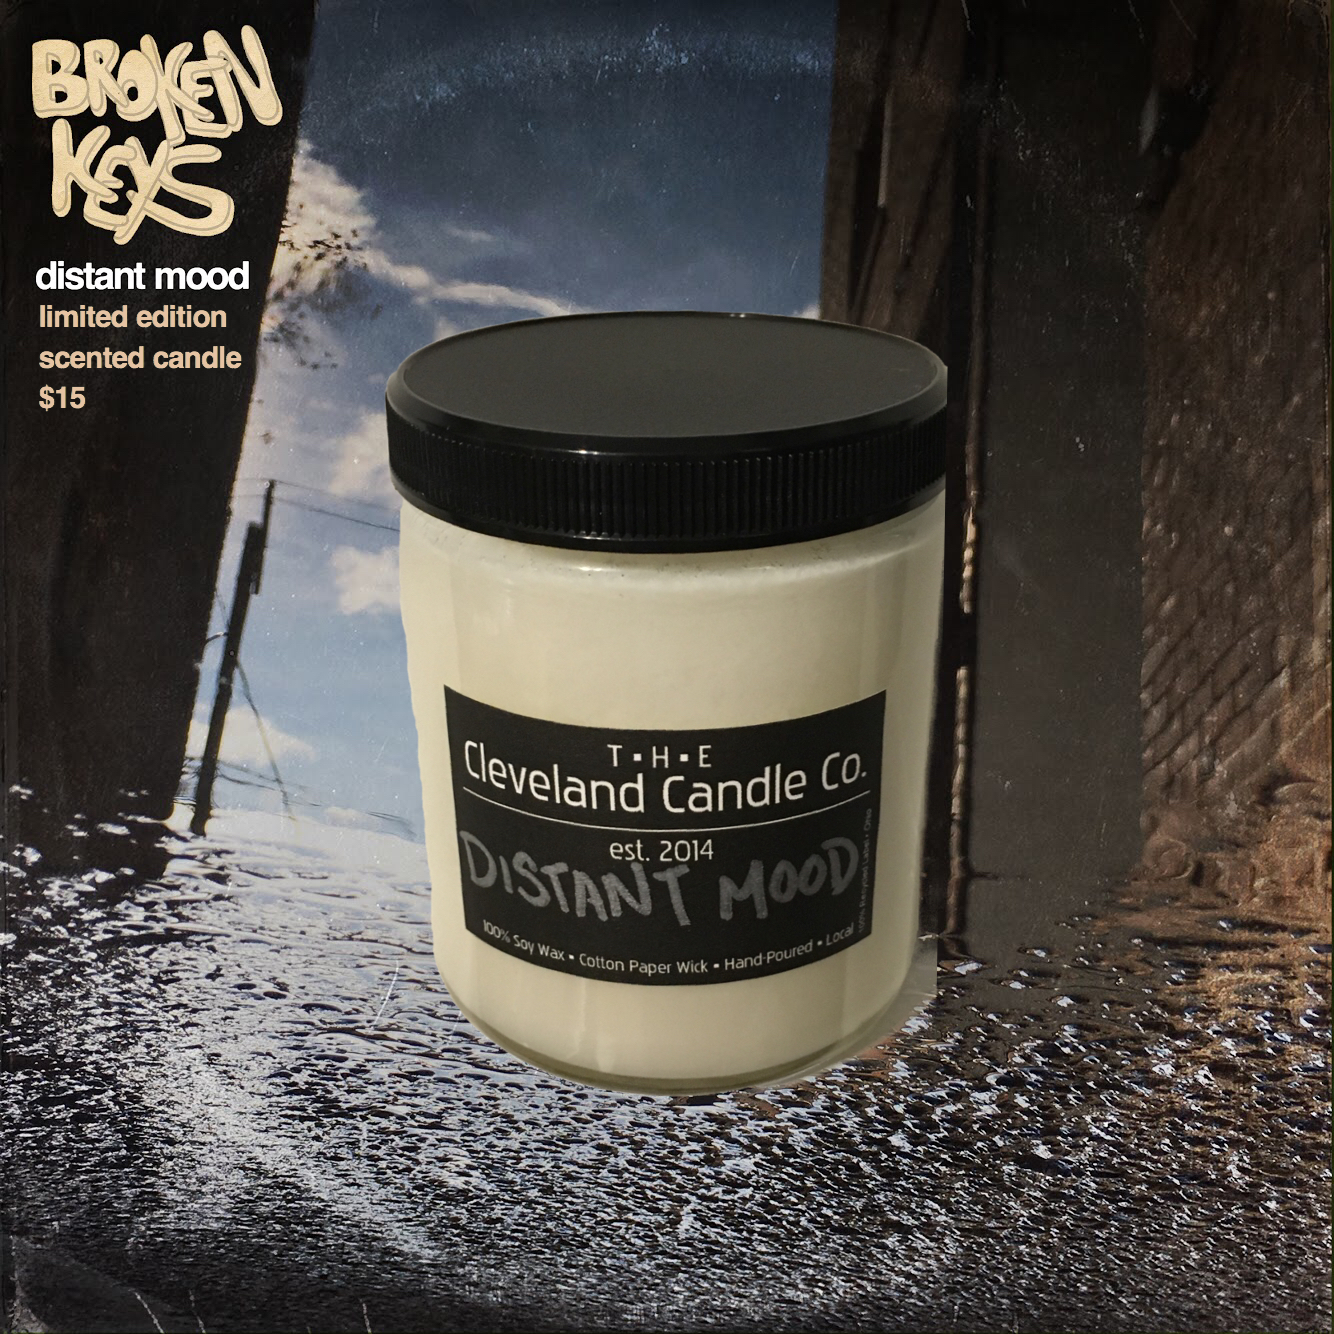 Distant Mood limited edition scented candle $15 - 8 oz. hand poured candle with 100% soy wax and cotton paper wick in collaboration with The Cleveland Candle Co. 30-50 hour burn time. The scent is intended to accompany the Distant Mood listening experience.